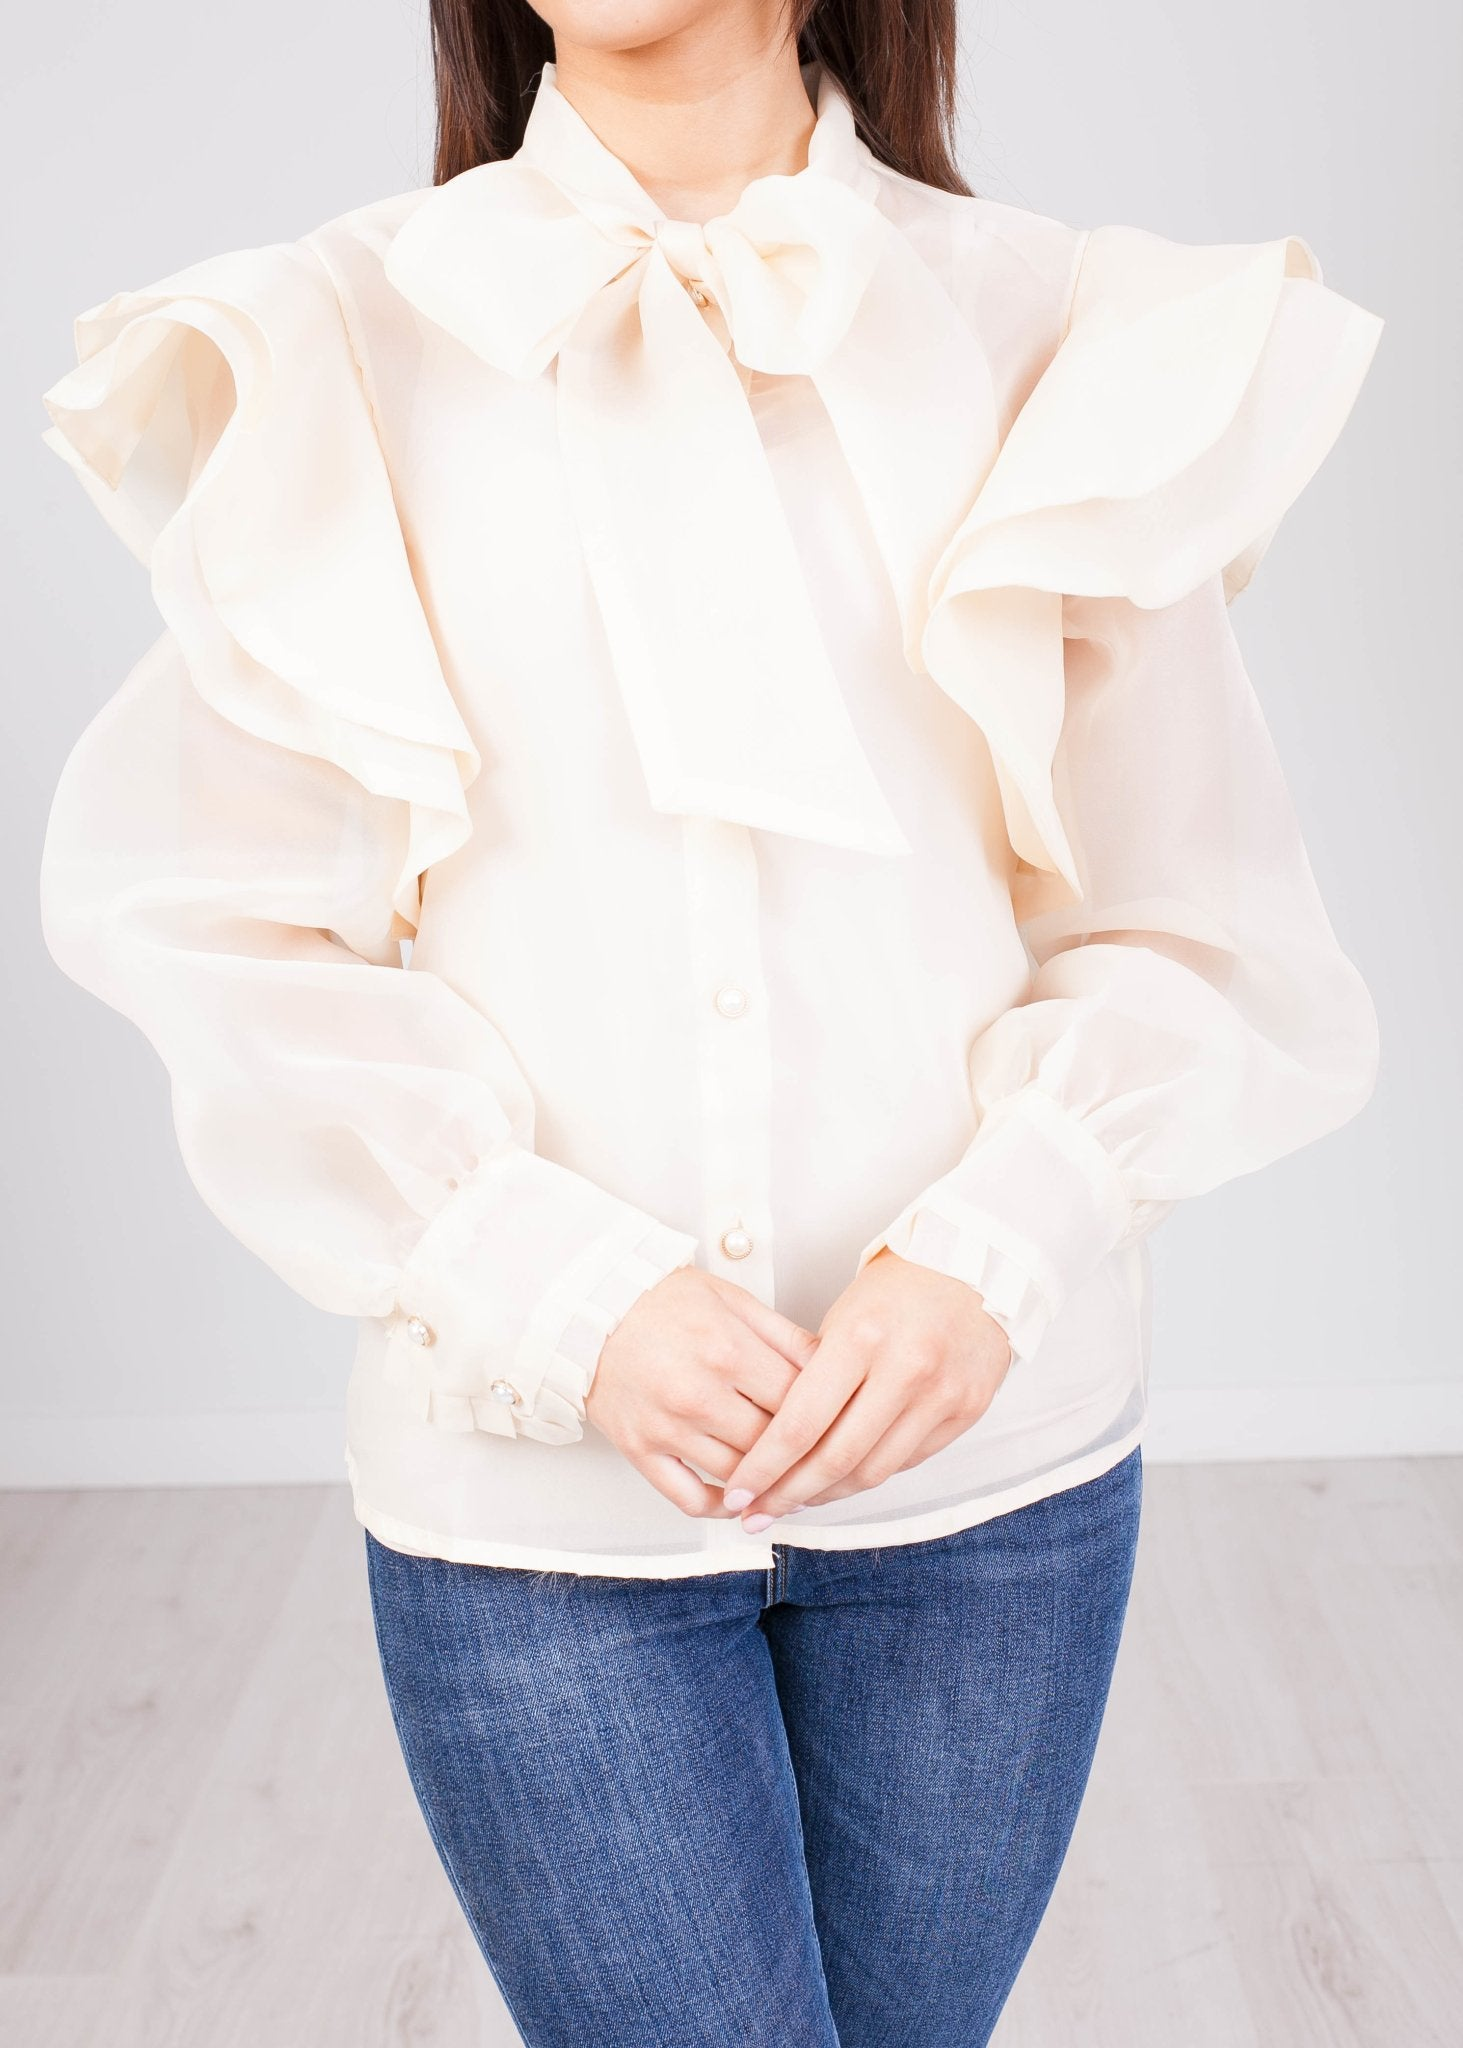 Alice Beige Sheer Blouse - The Walk in Wardrobe